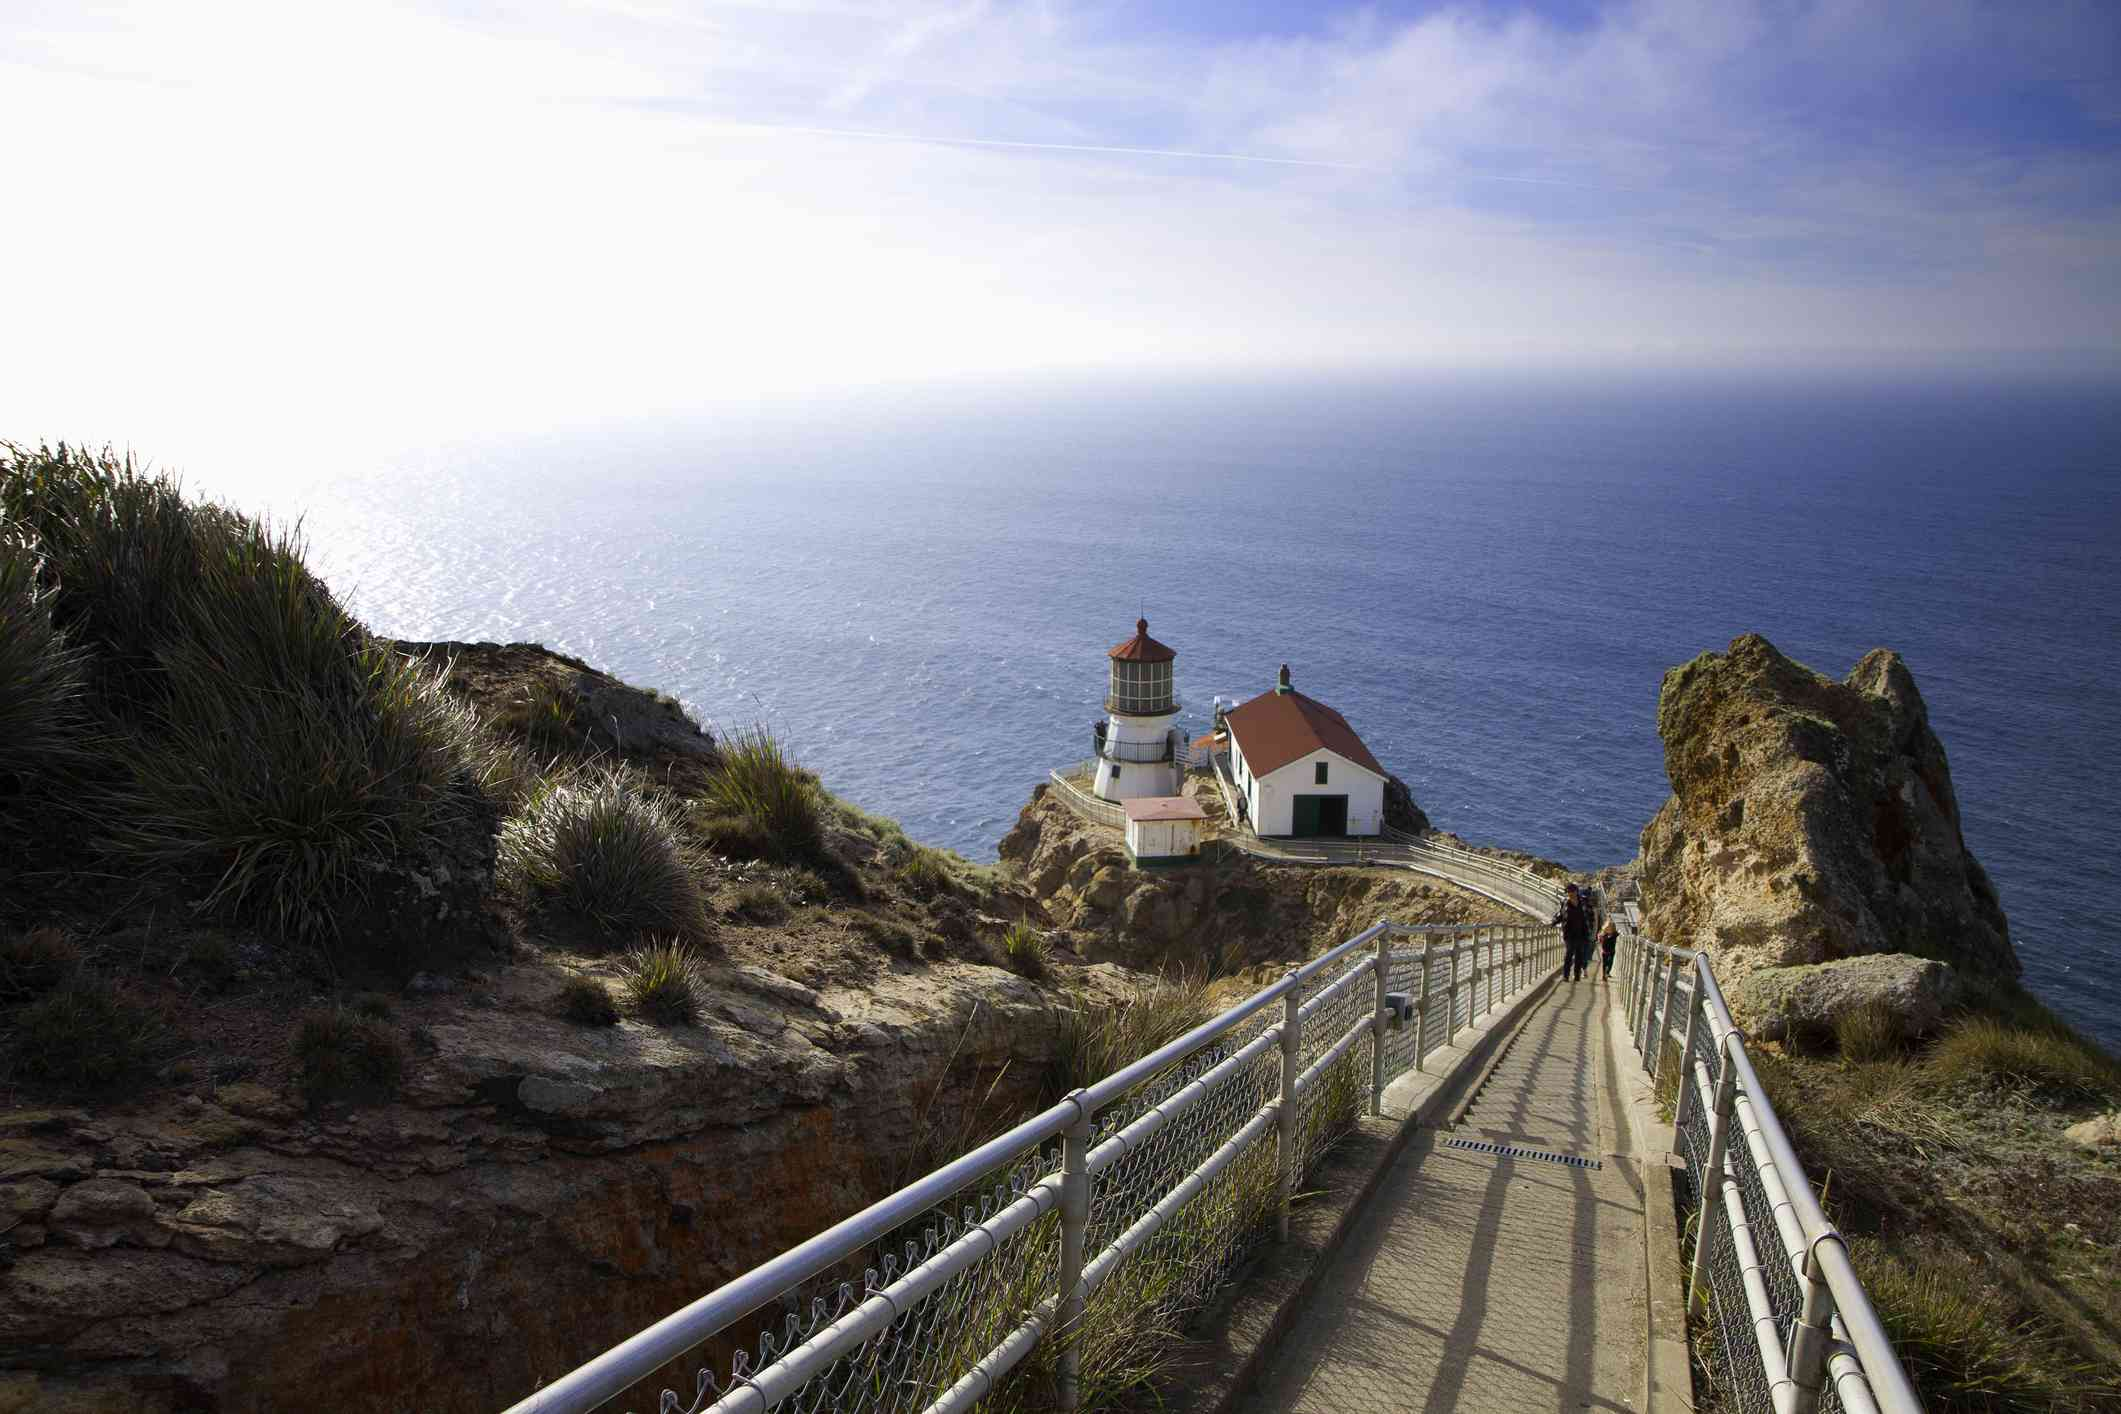 Faro de Point Reyes en la costa, Condado de Marin, California, Estados Unidos - foto de stock